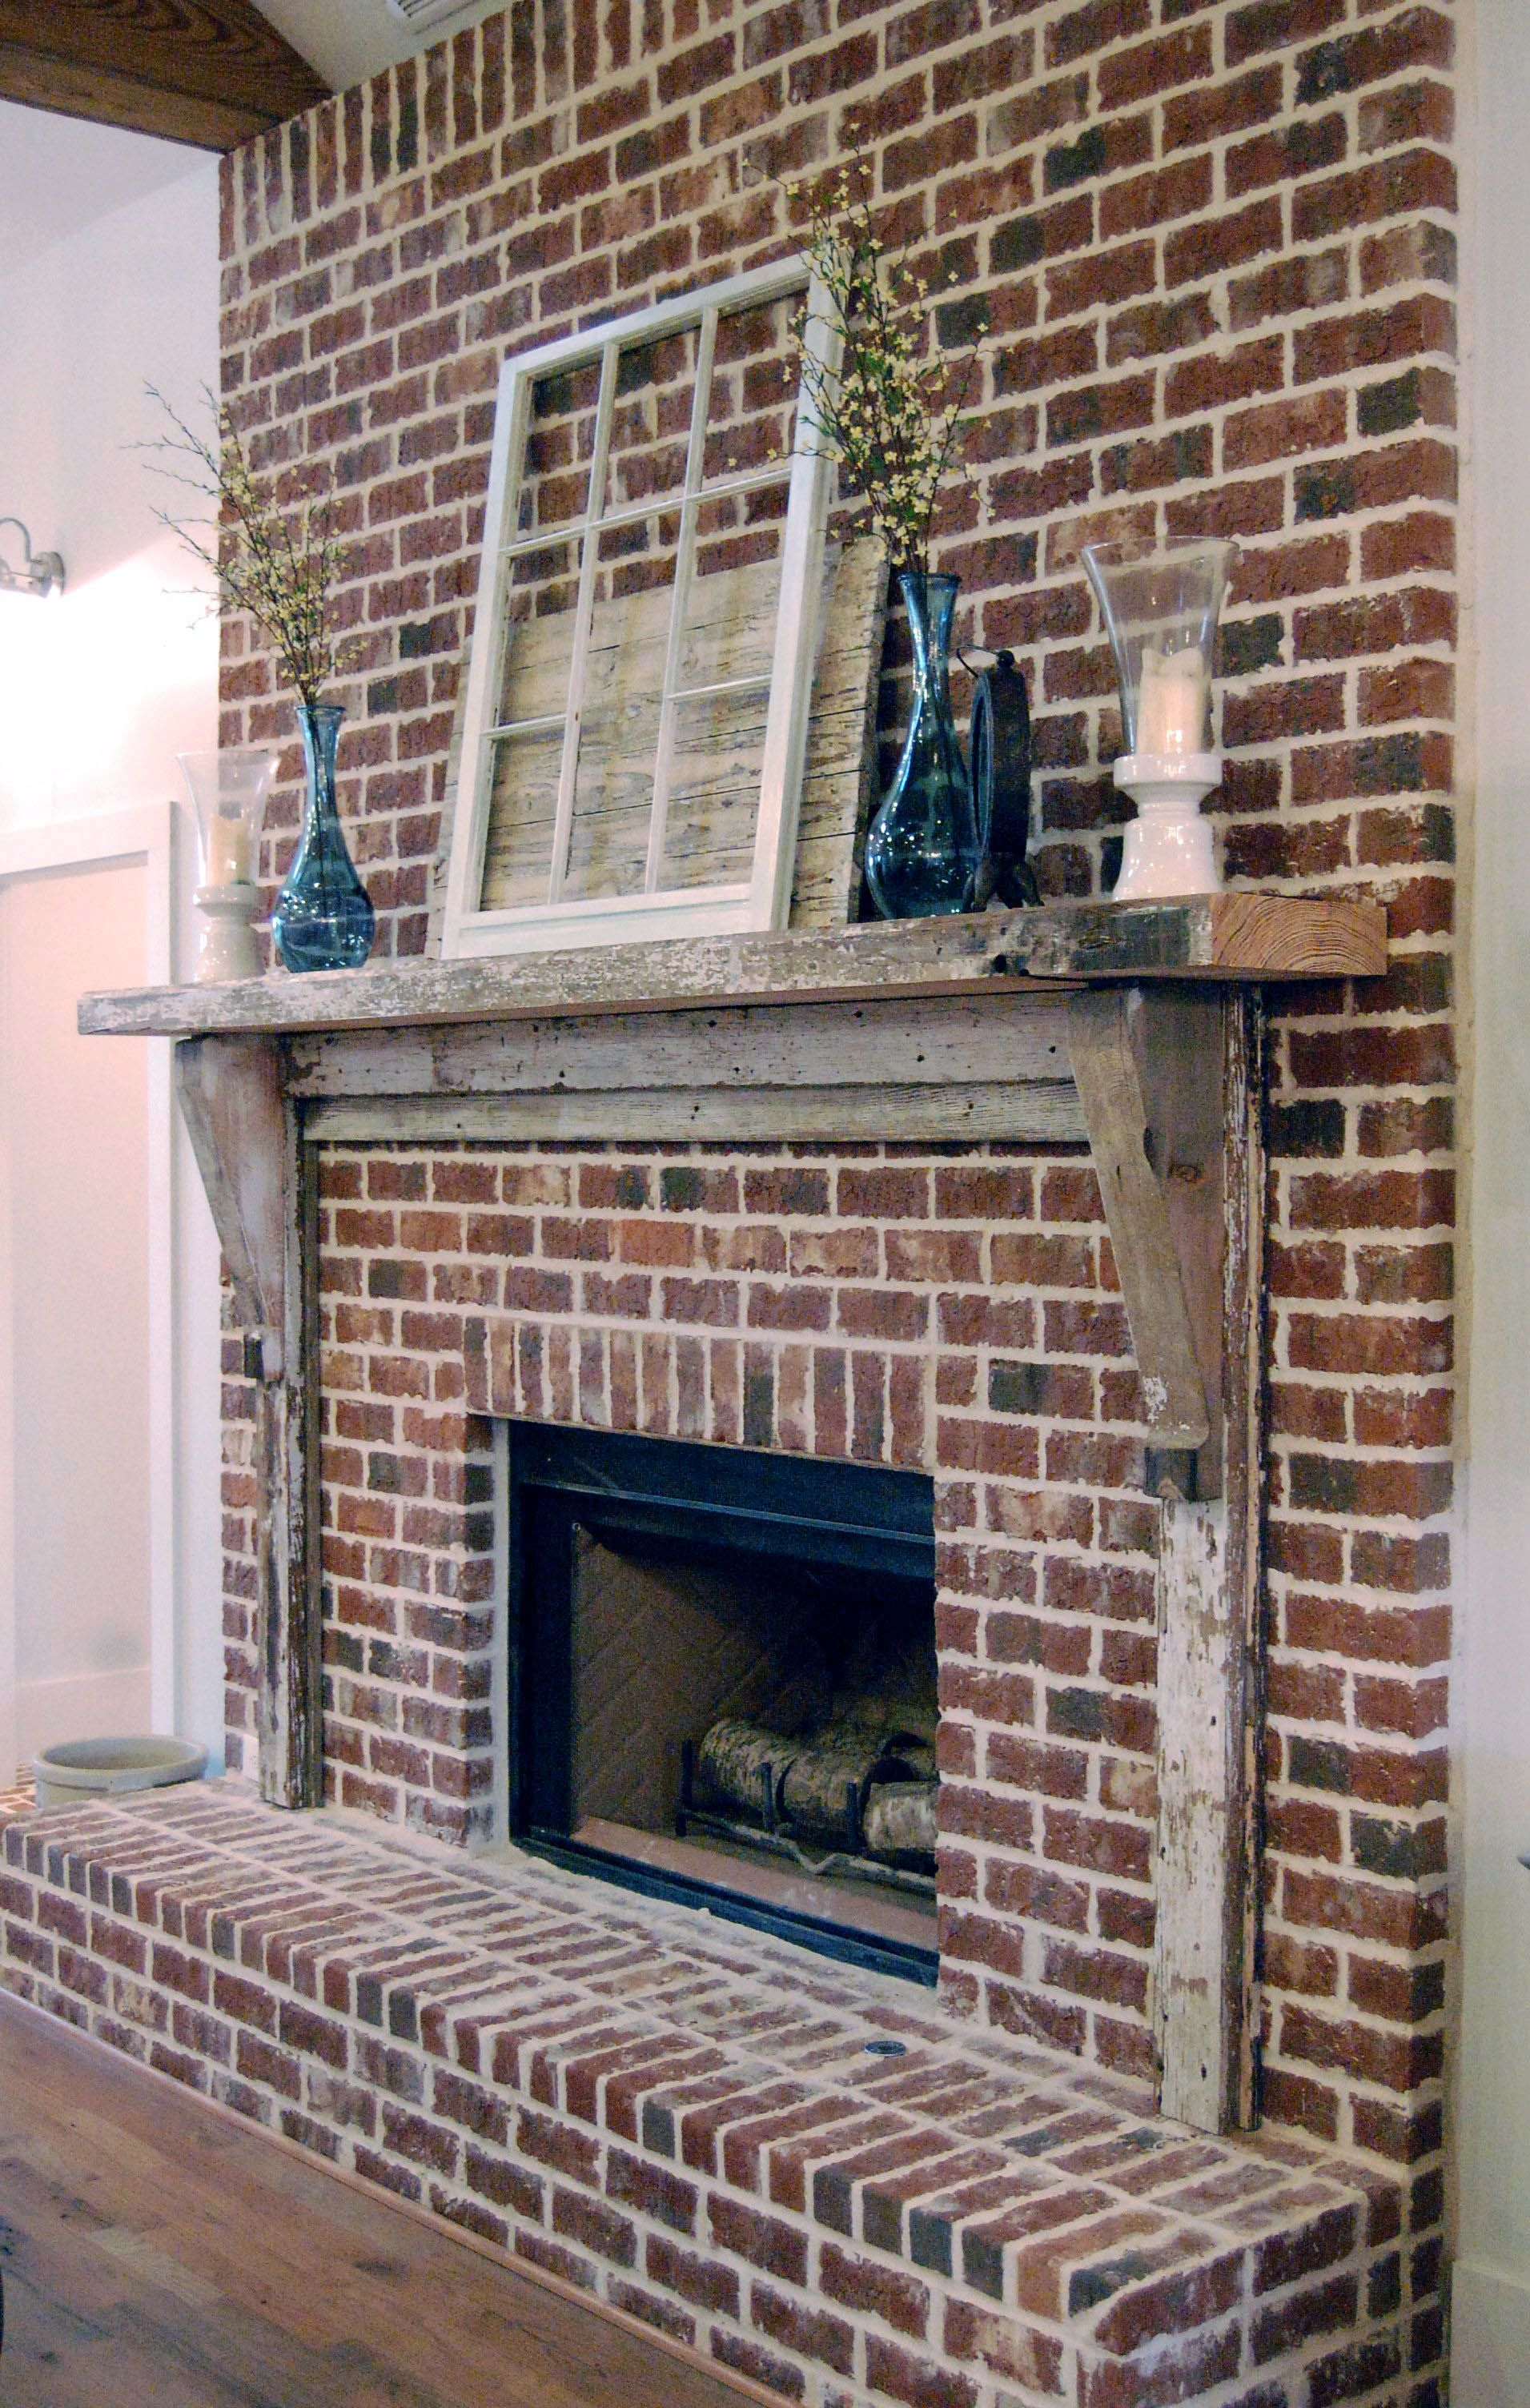 8 Outdoor Fireplace and also Fire Pit Design Suggestions ... on Simple Outdoor Brick Fireplace id=22334